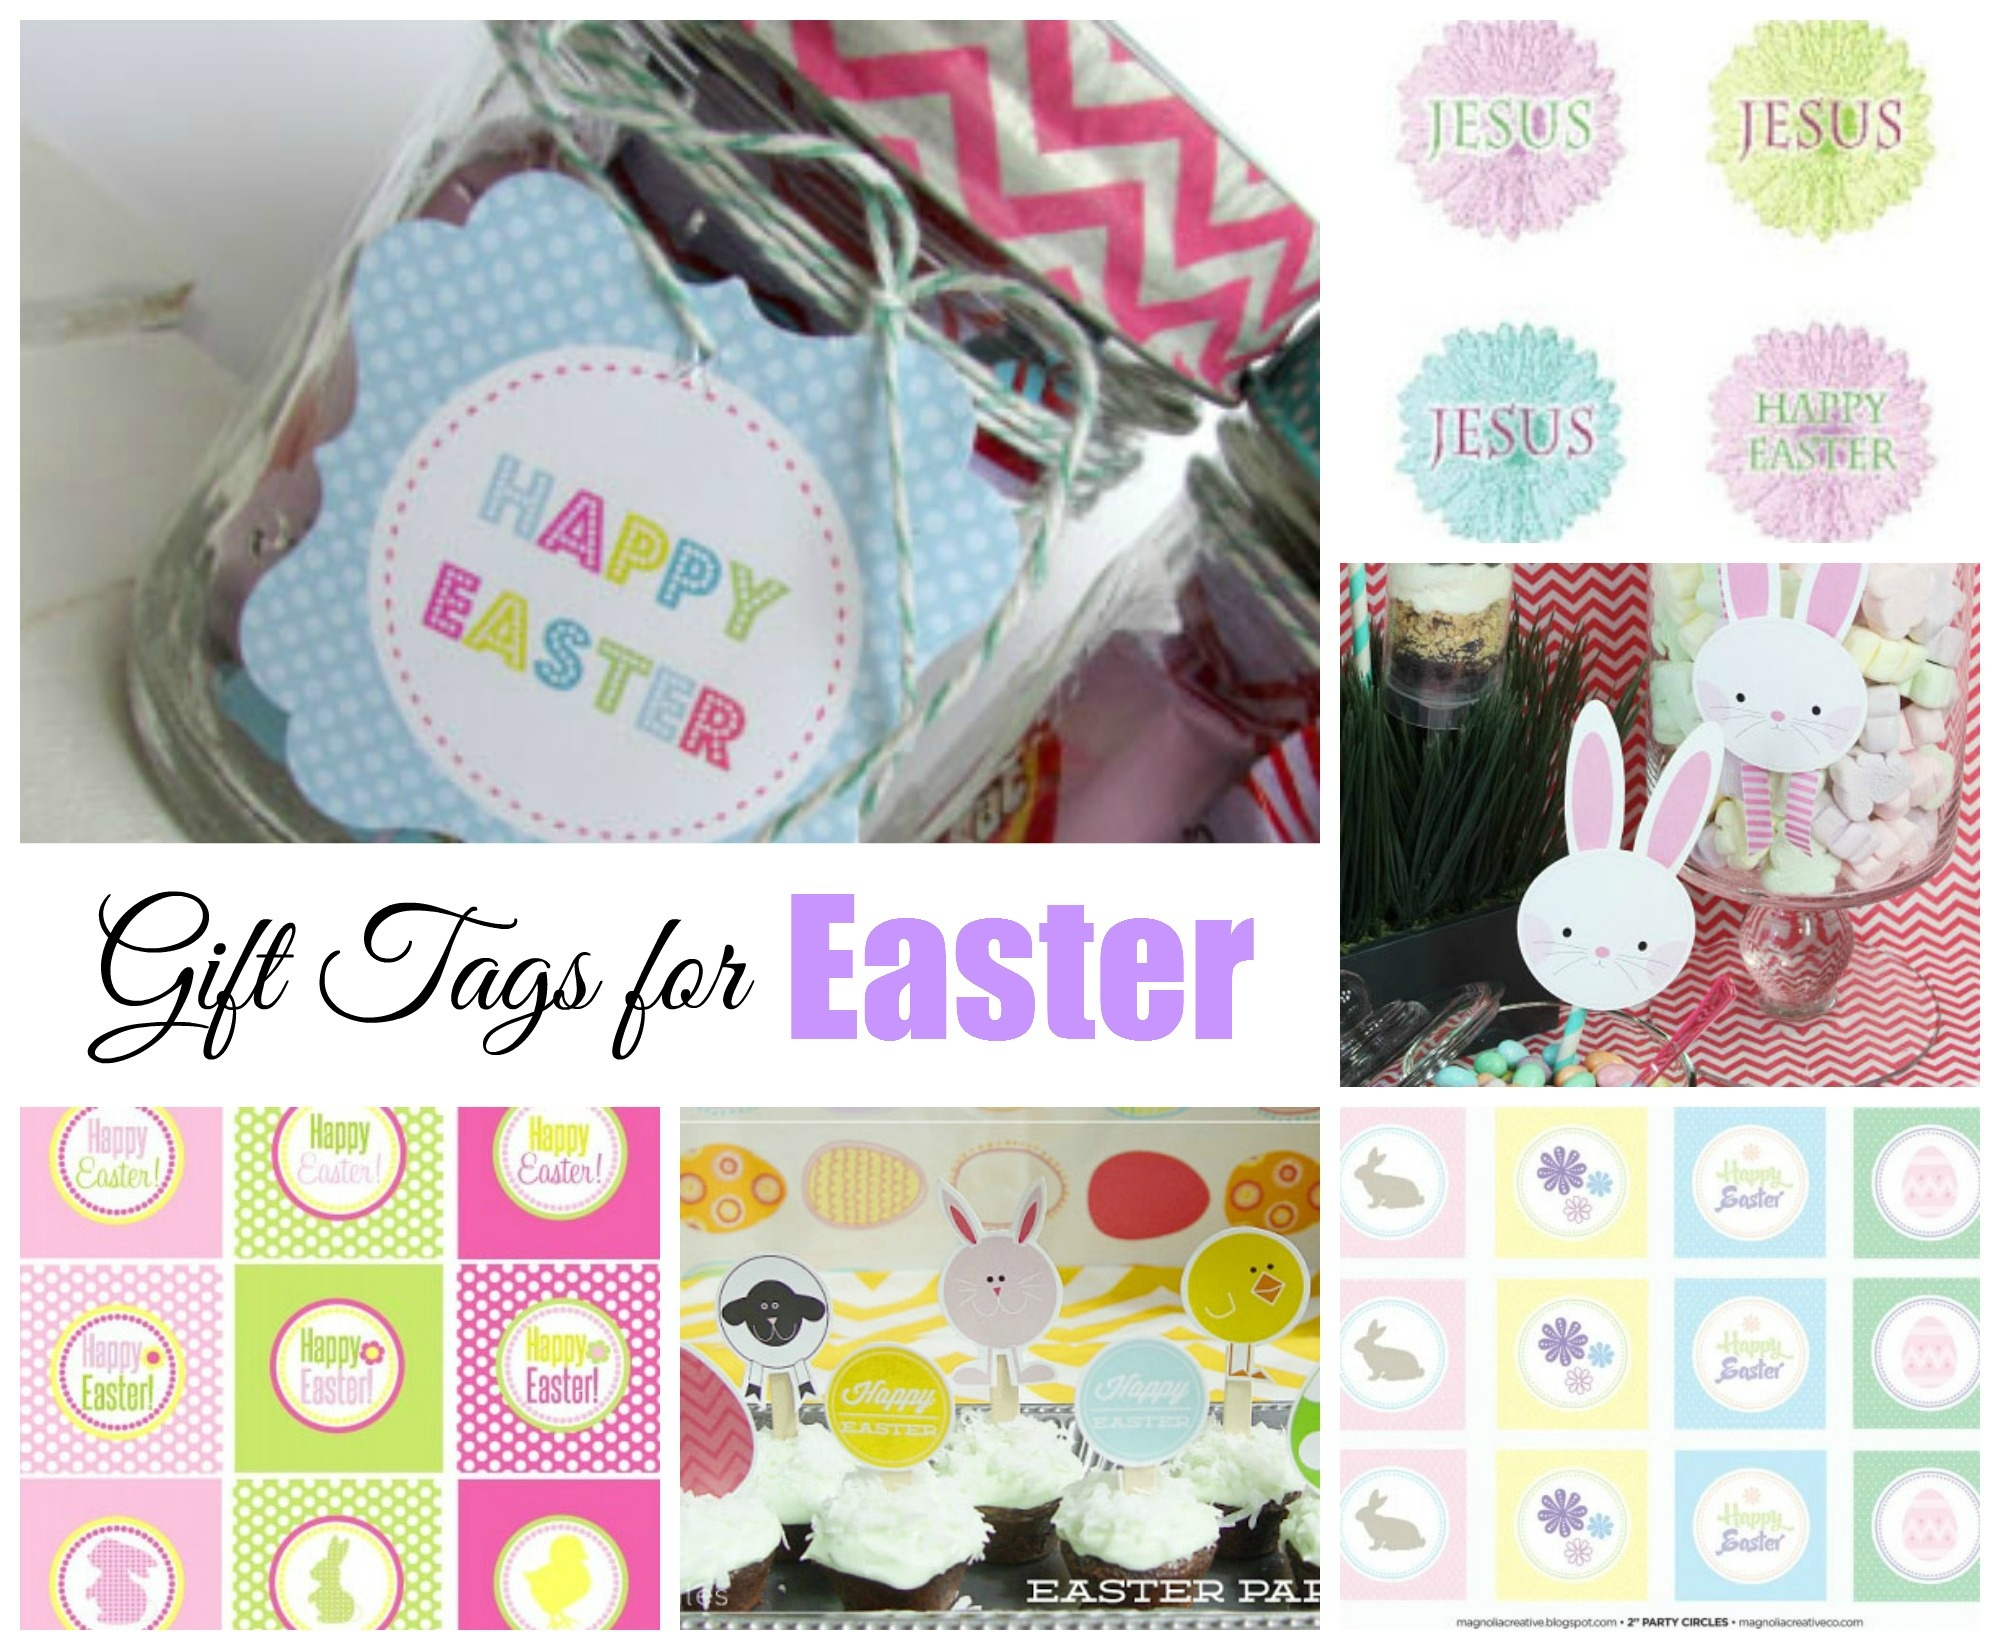 Easter Free Printable Gift Tags   Celebrating Holidays - Party Favor Tags Free Printable